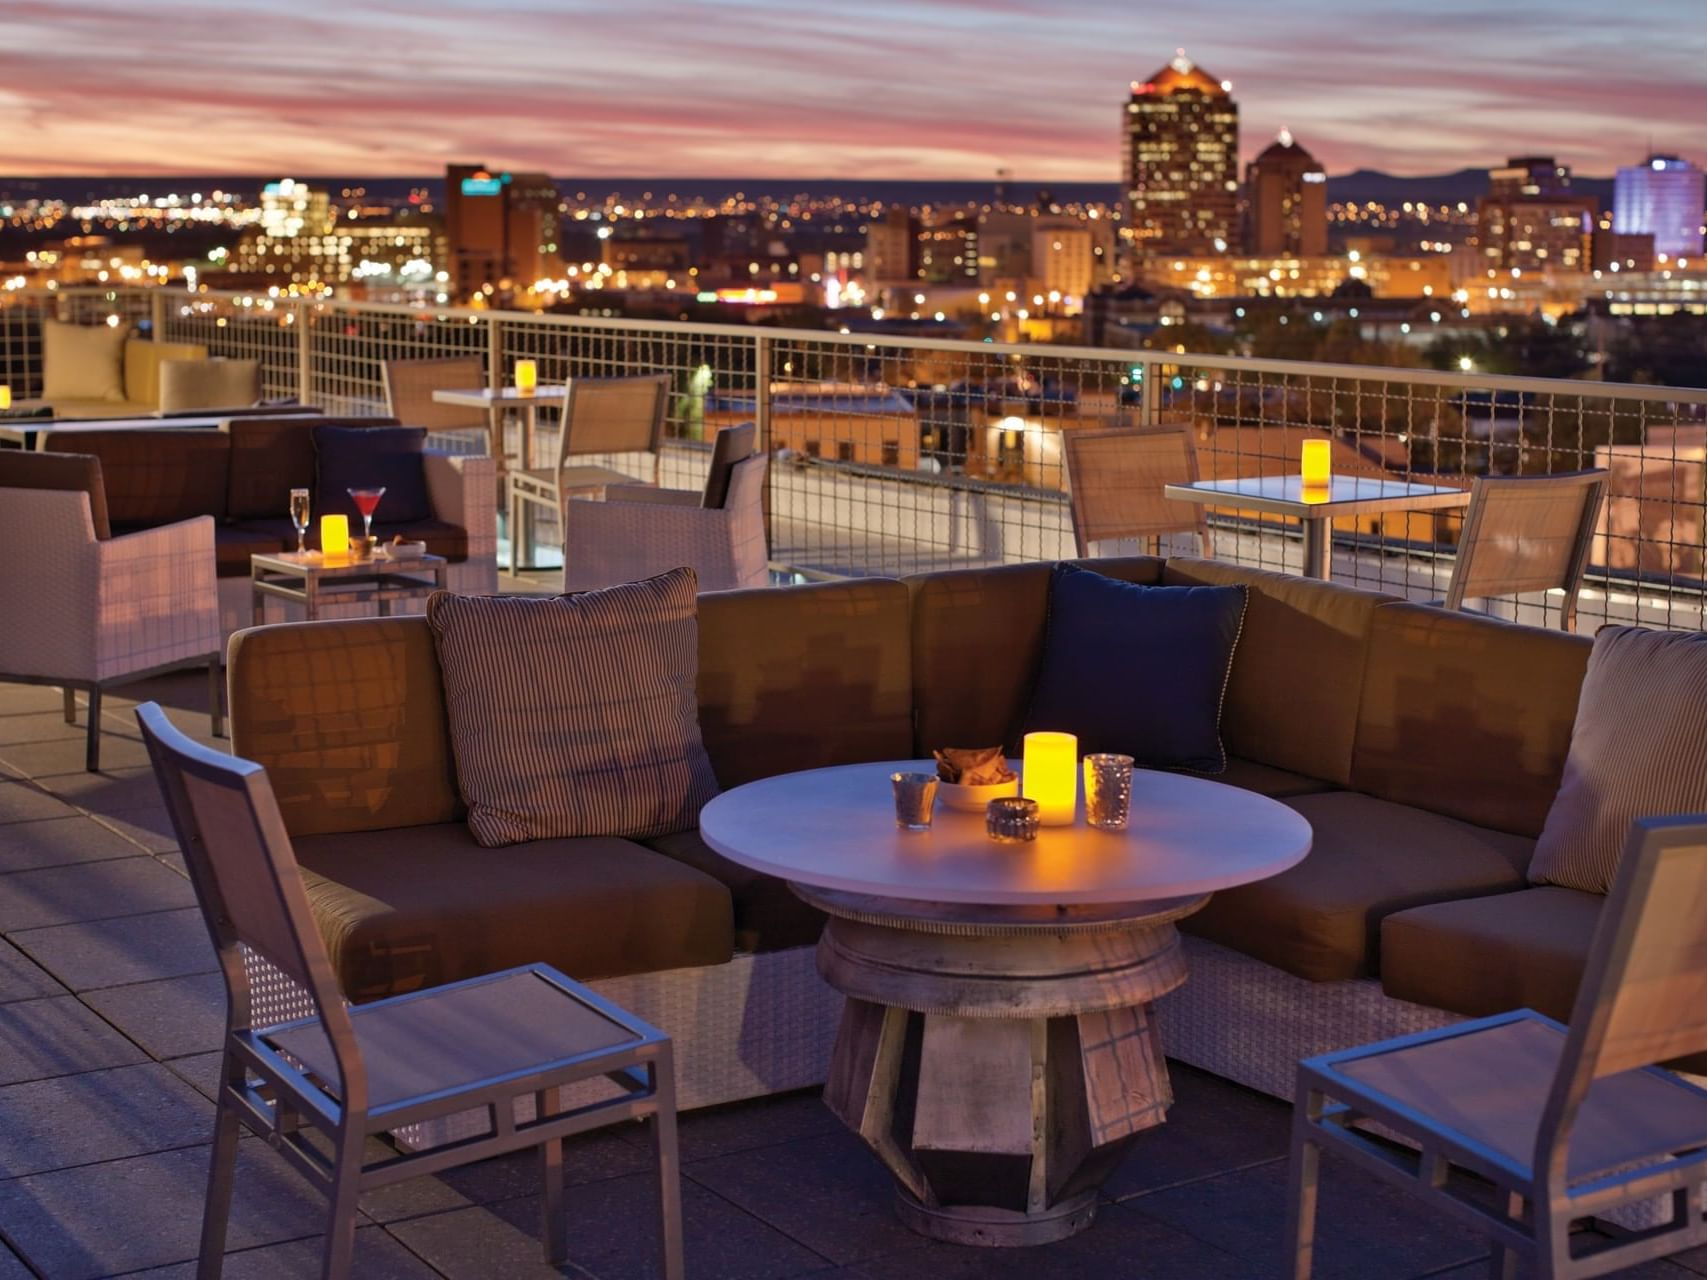 Lounge seats at rooftop restaurant overlooking city